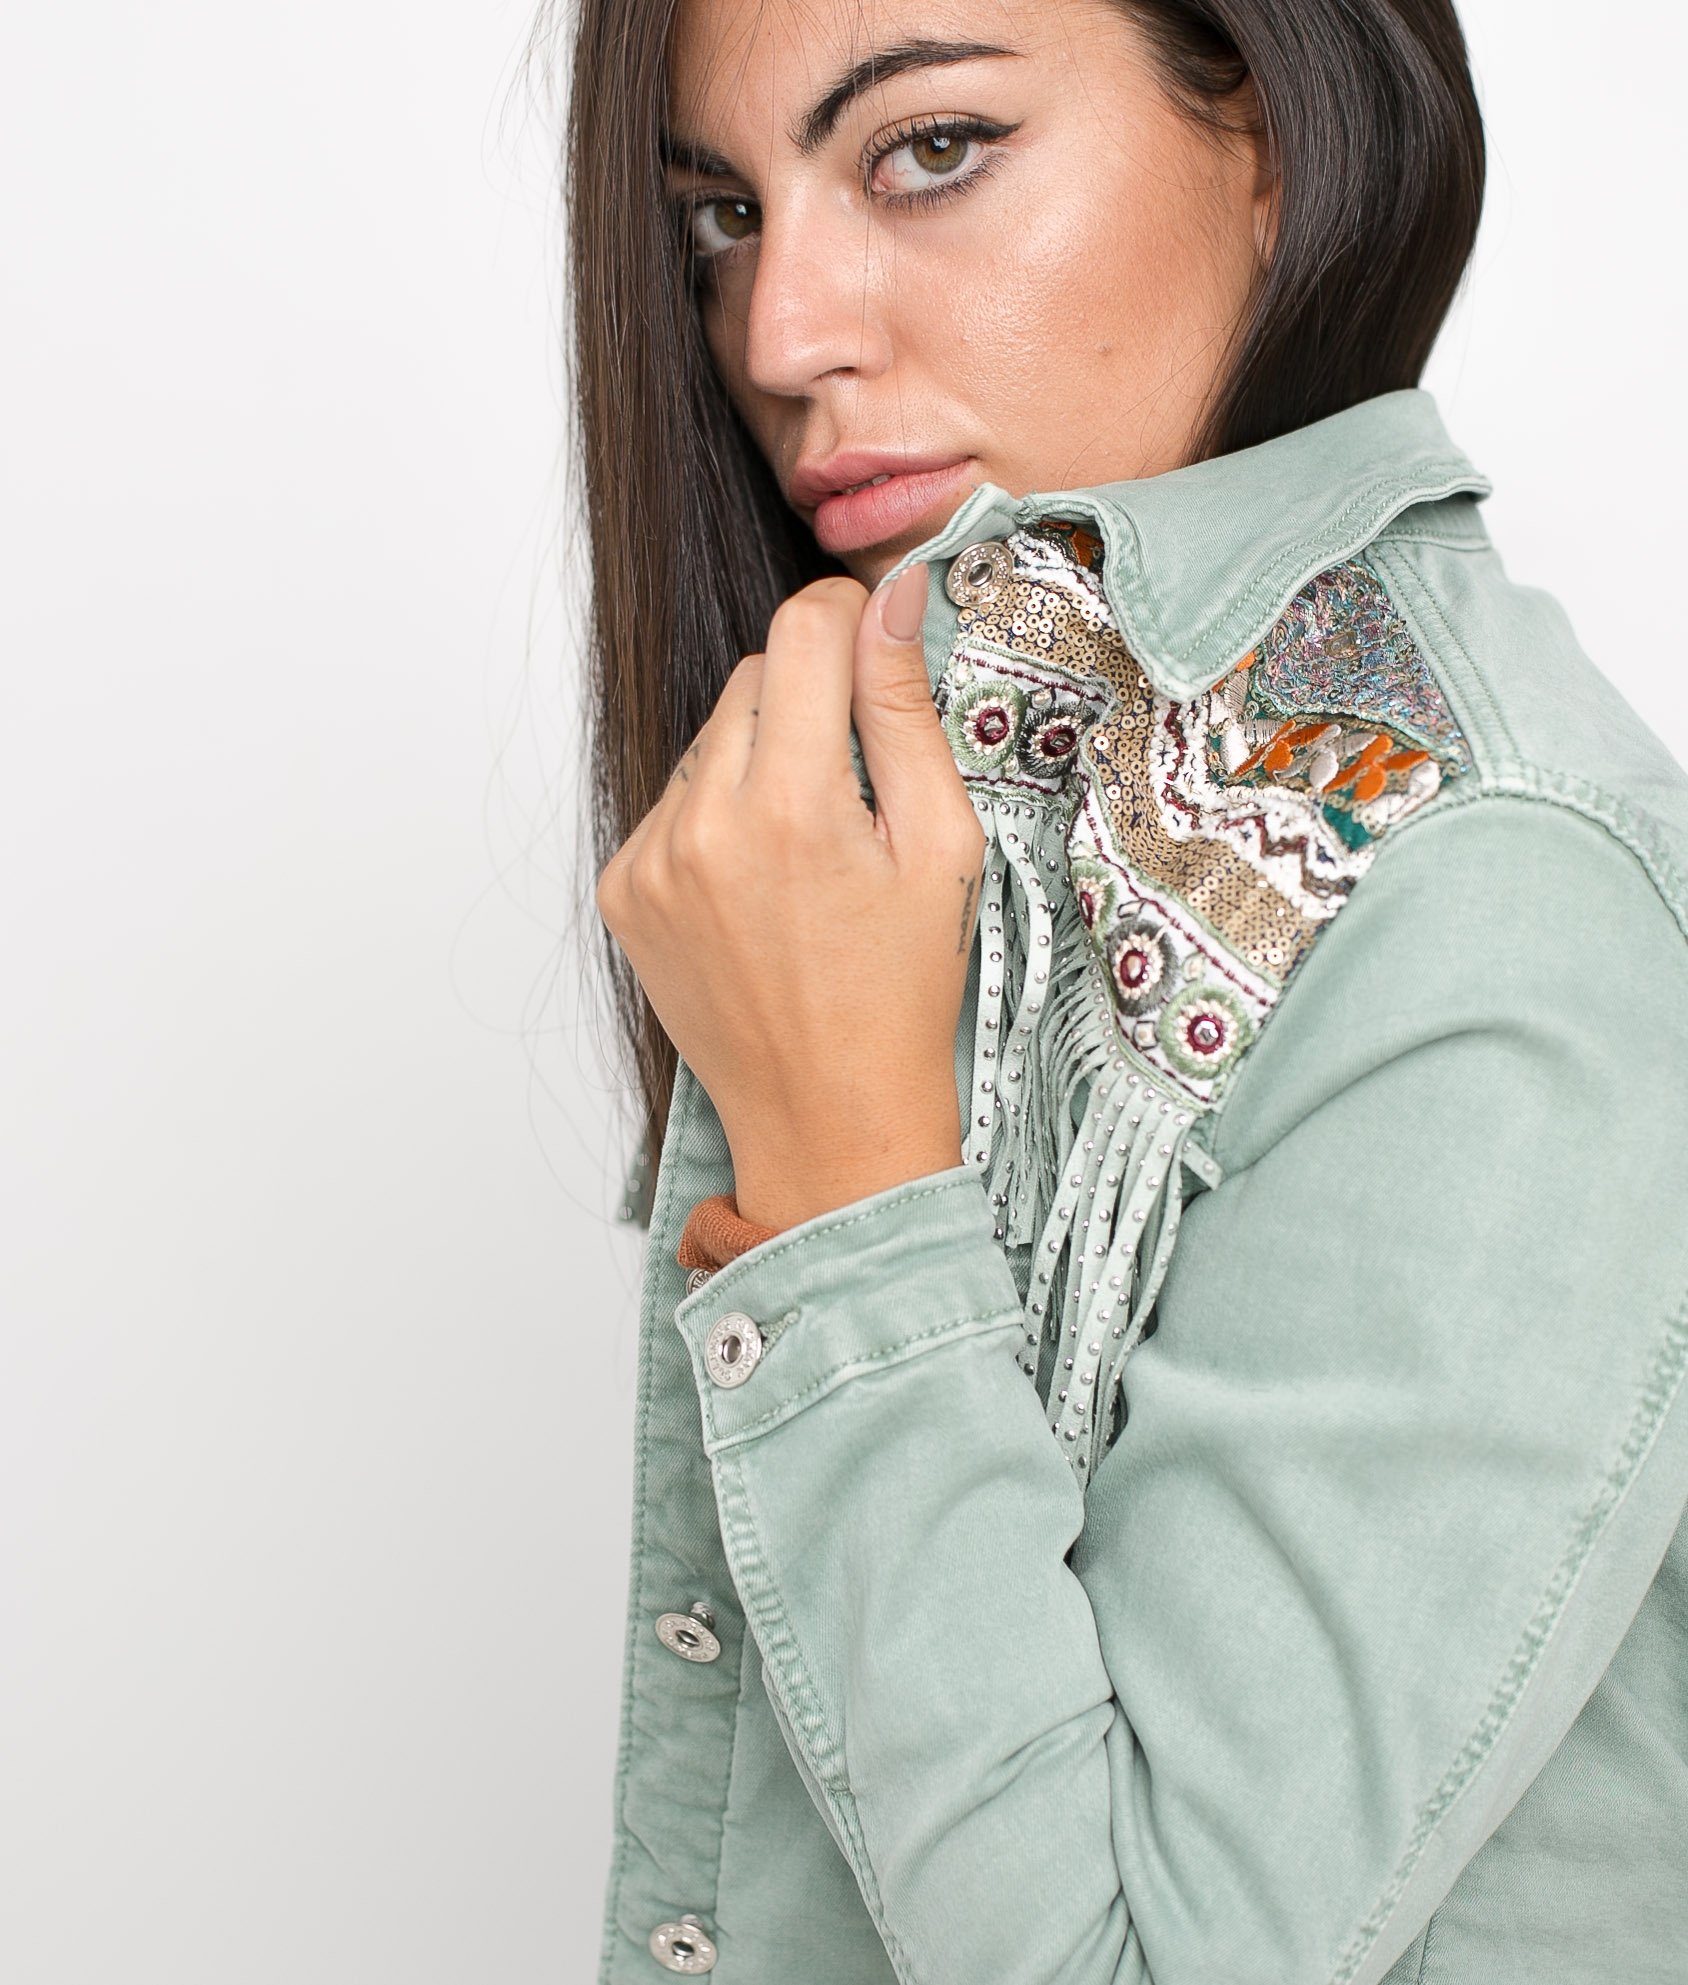 Munagu jacket - Green